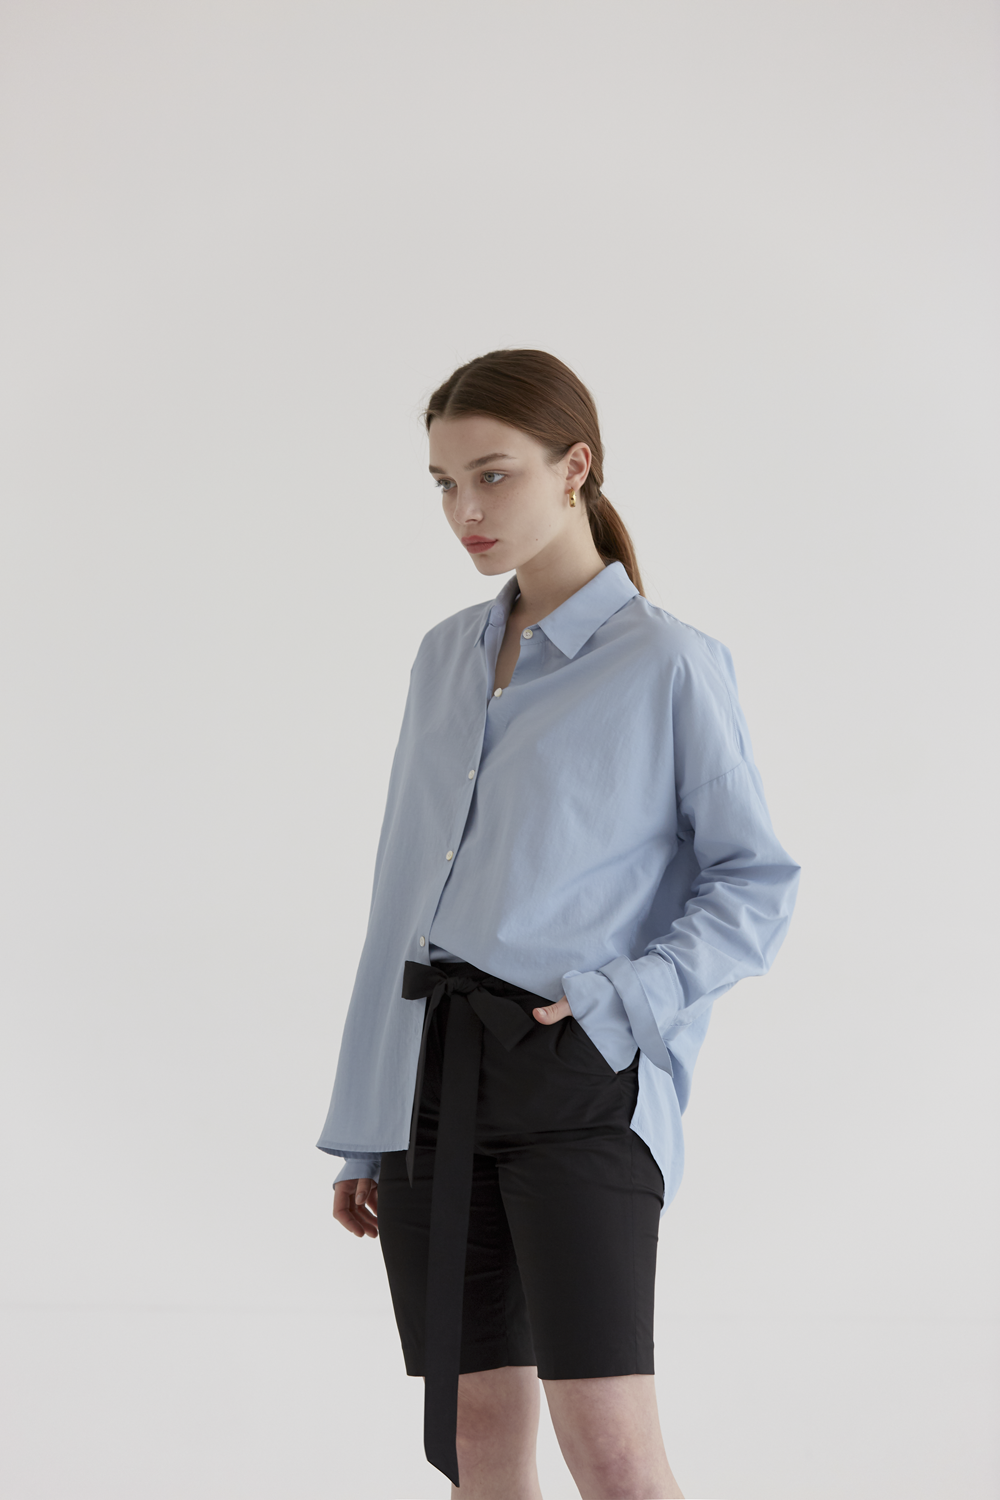 anthese tod cuffs shirt, blue